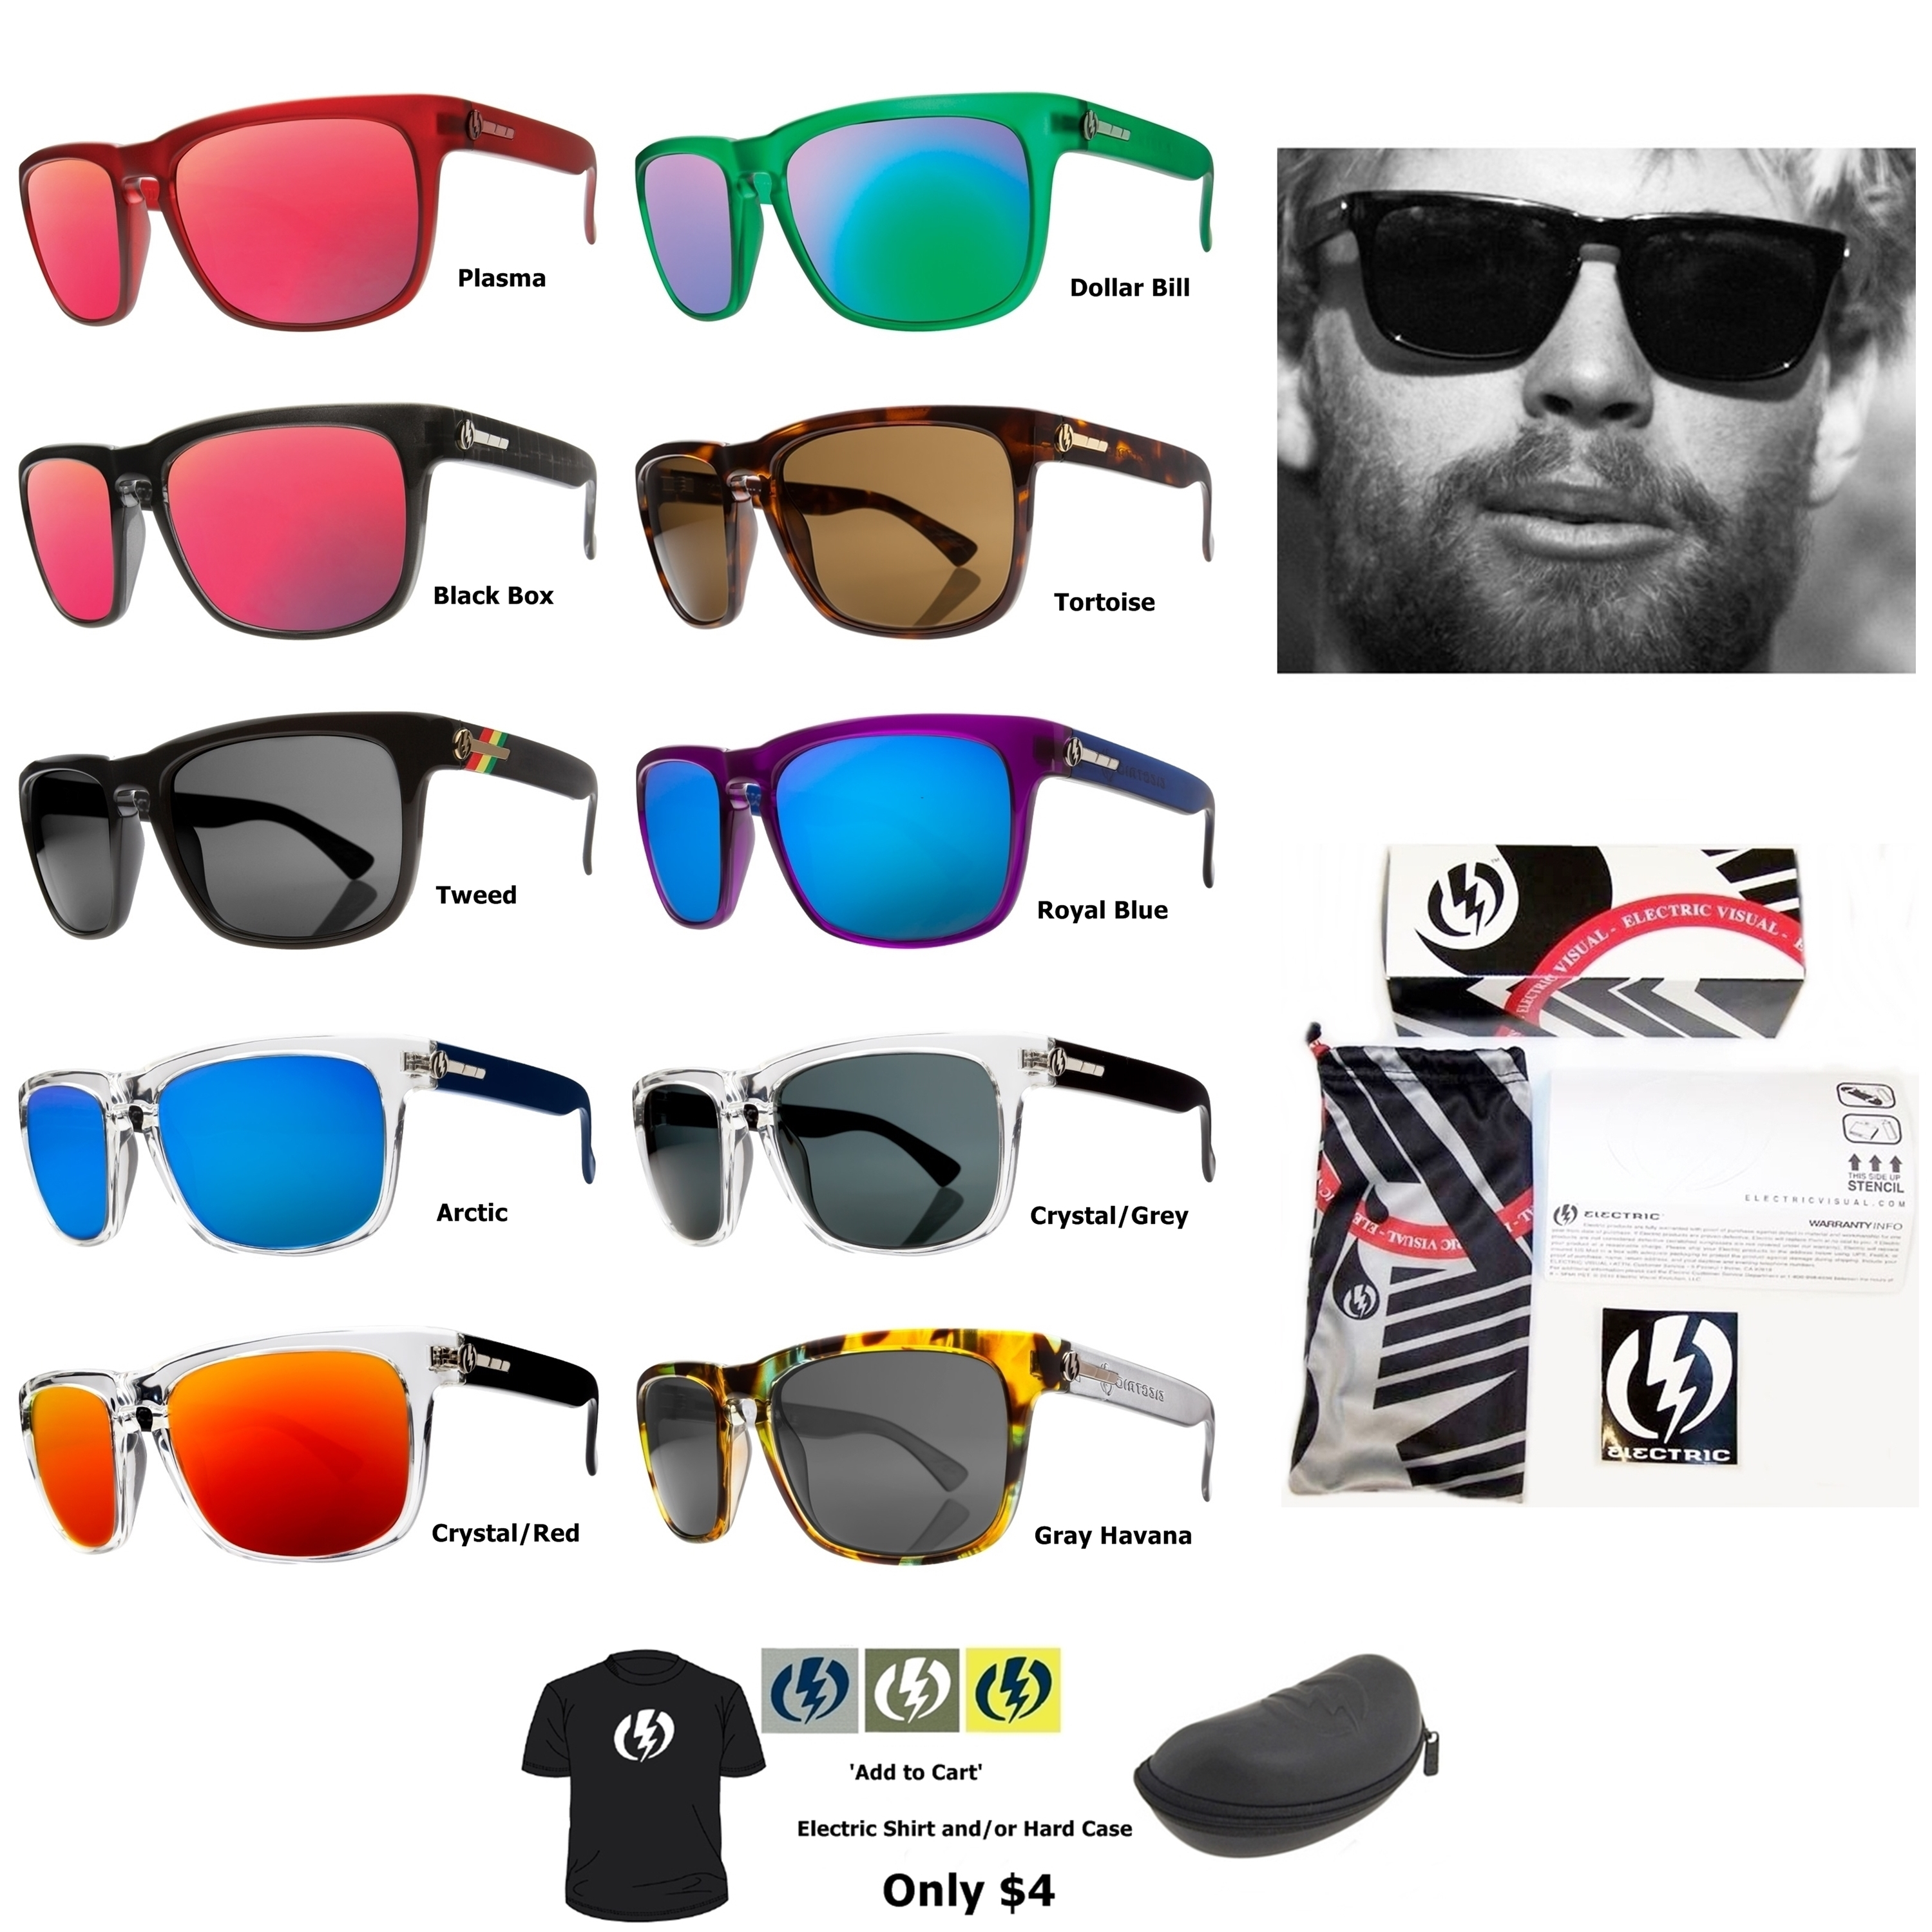 Electric Sunglasses Knoxville  new electric visual knoxville mens square sunglasses msrp 120 ebay